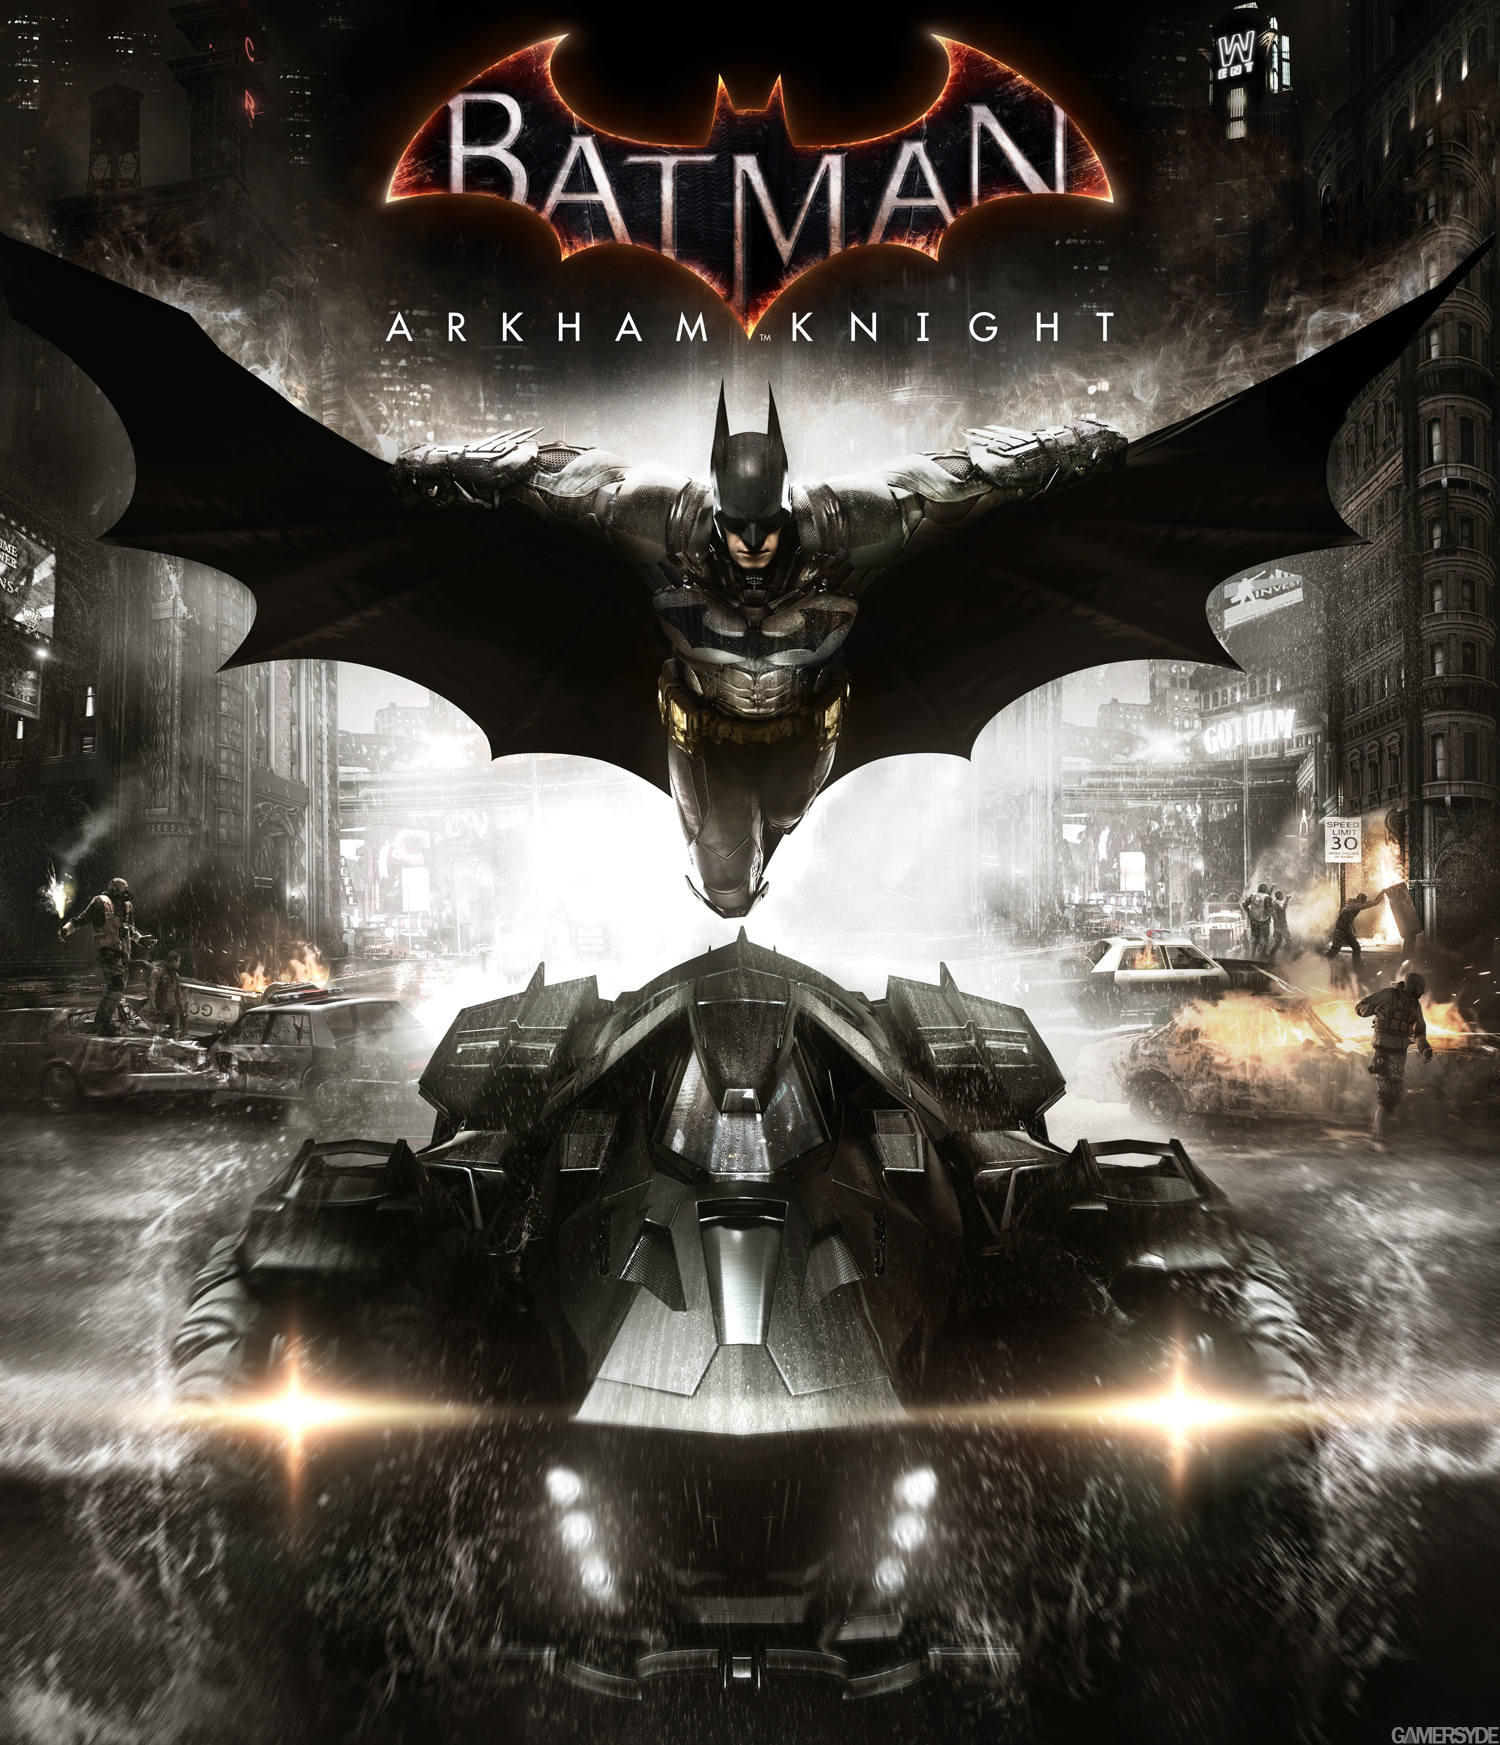 image_batman_arkham_knight-24389-2899_0002